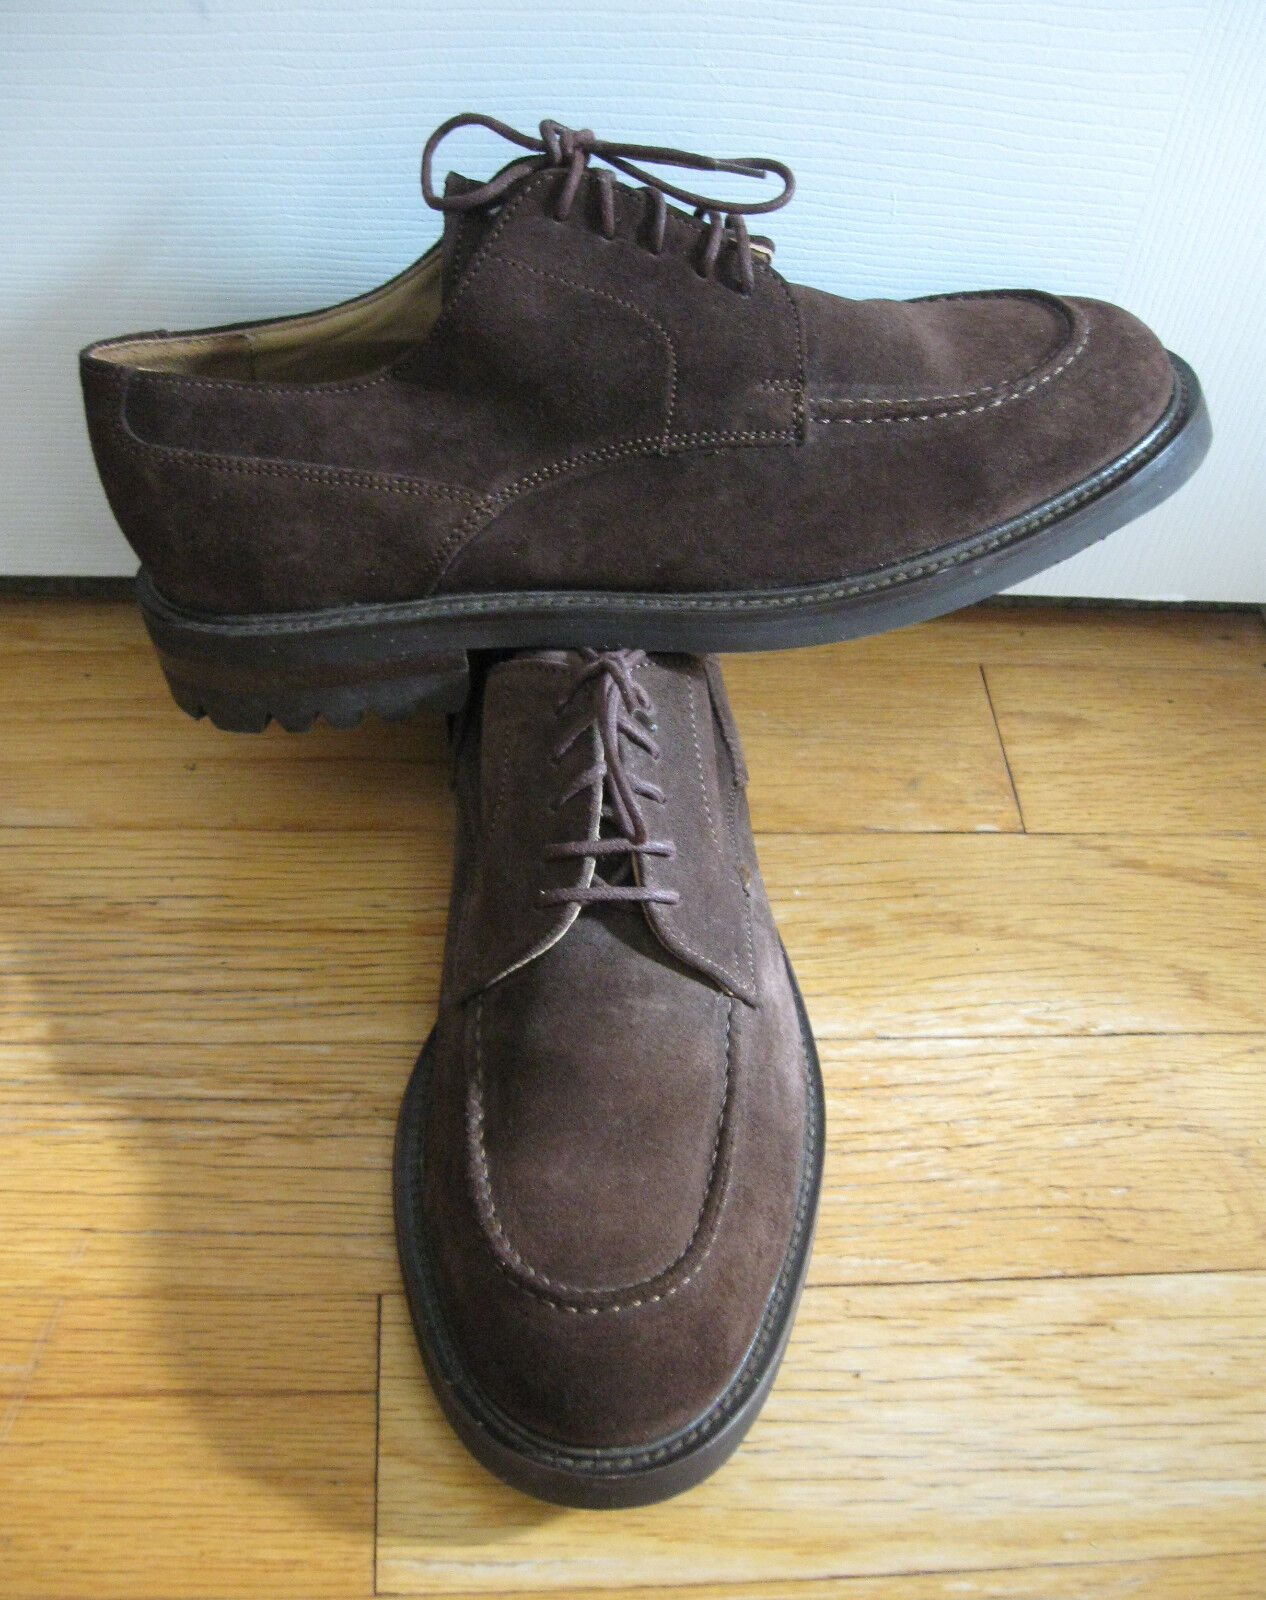 GAP SHOES TRADITIONAL STYLE MEN'S BROWN SUEDE OXFORDS SIZE 9.5 D MADE IN ITALY